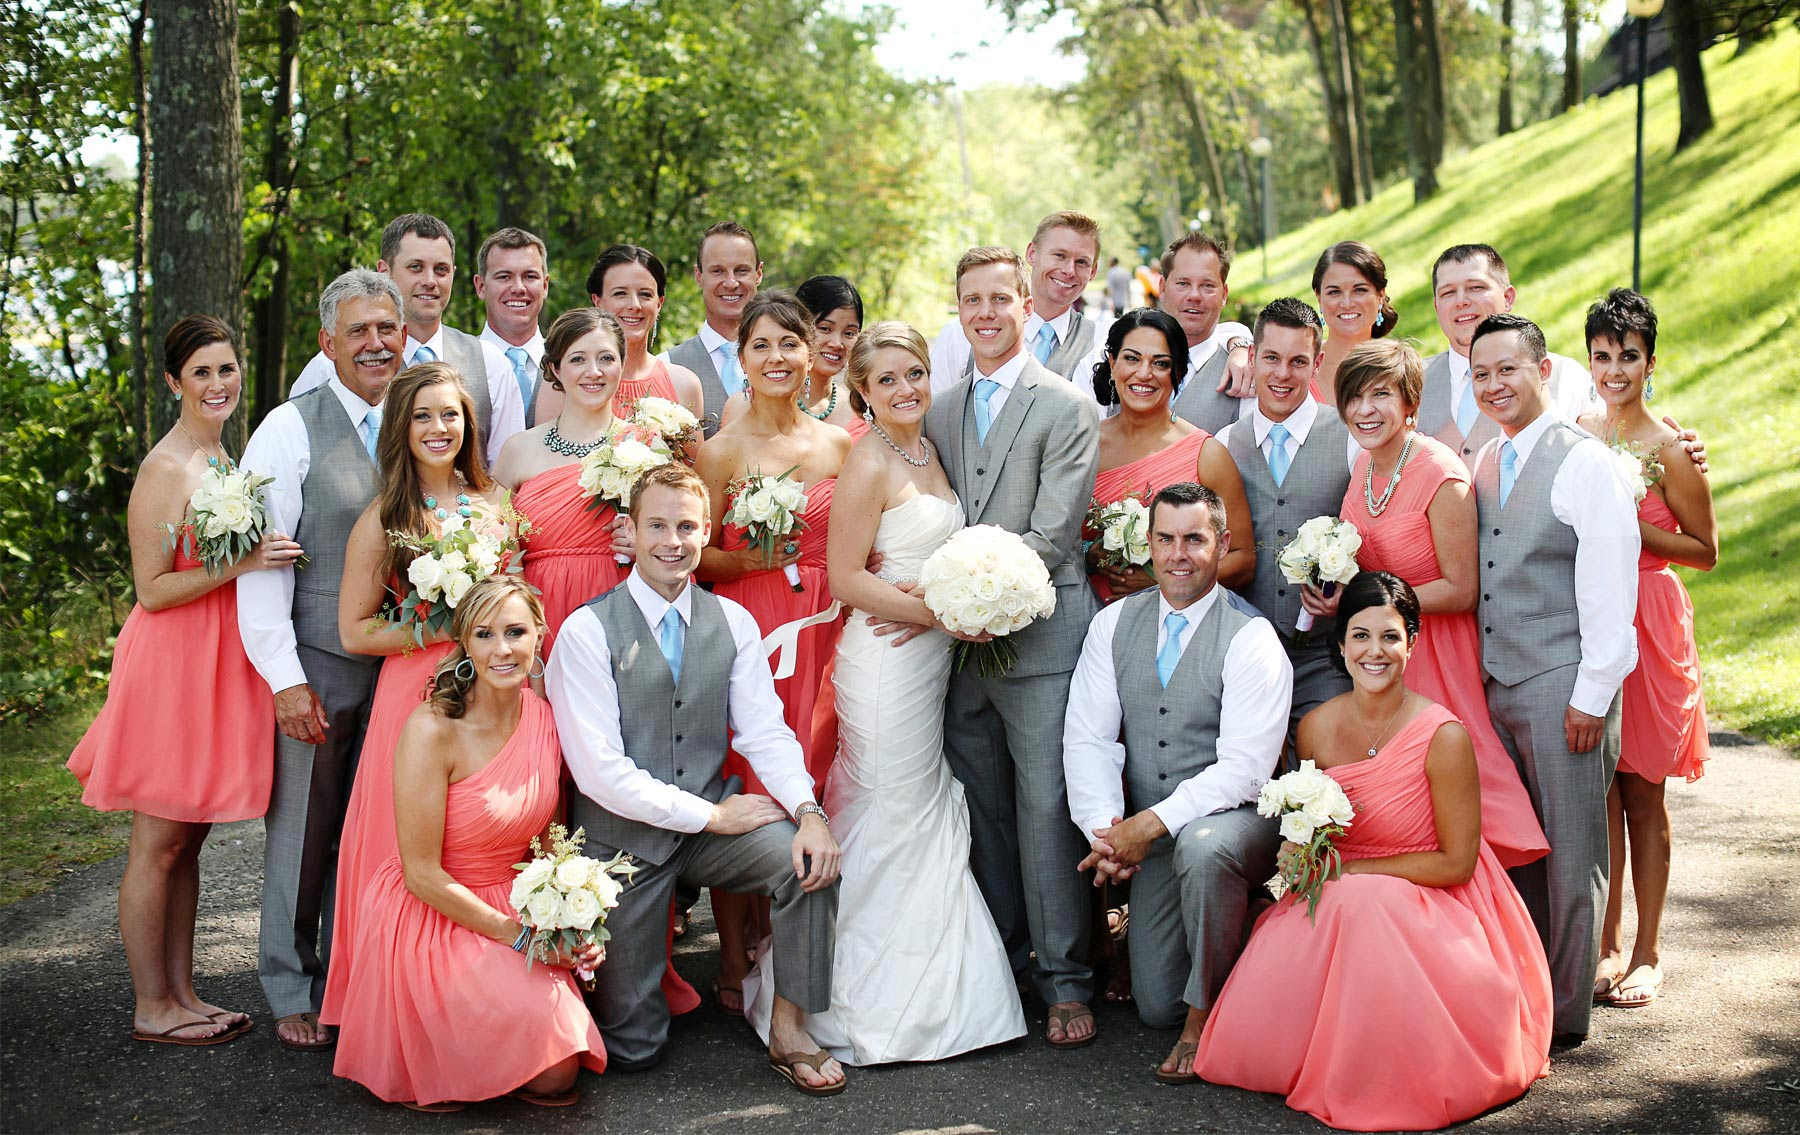 06-Brainerd-Minnesota-Wedding-Photography-by-Vick-Photography-Craguns-Resort-Wedding-Party-Group-Lucy-&-Matt.jpg